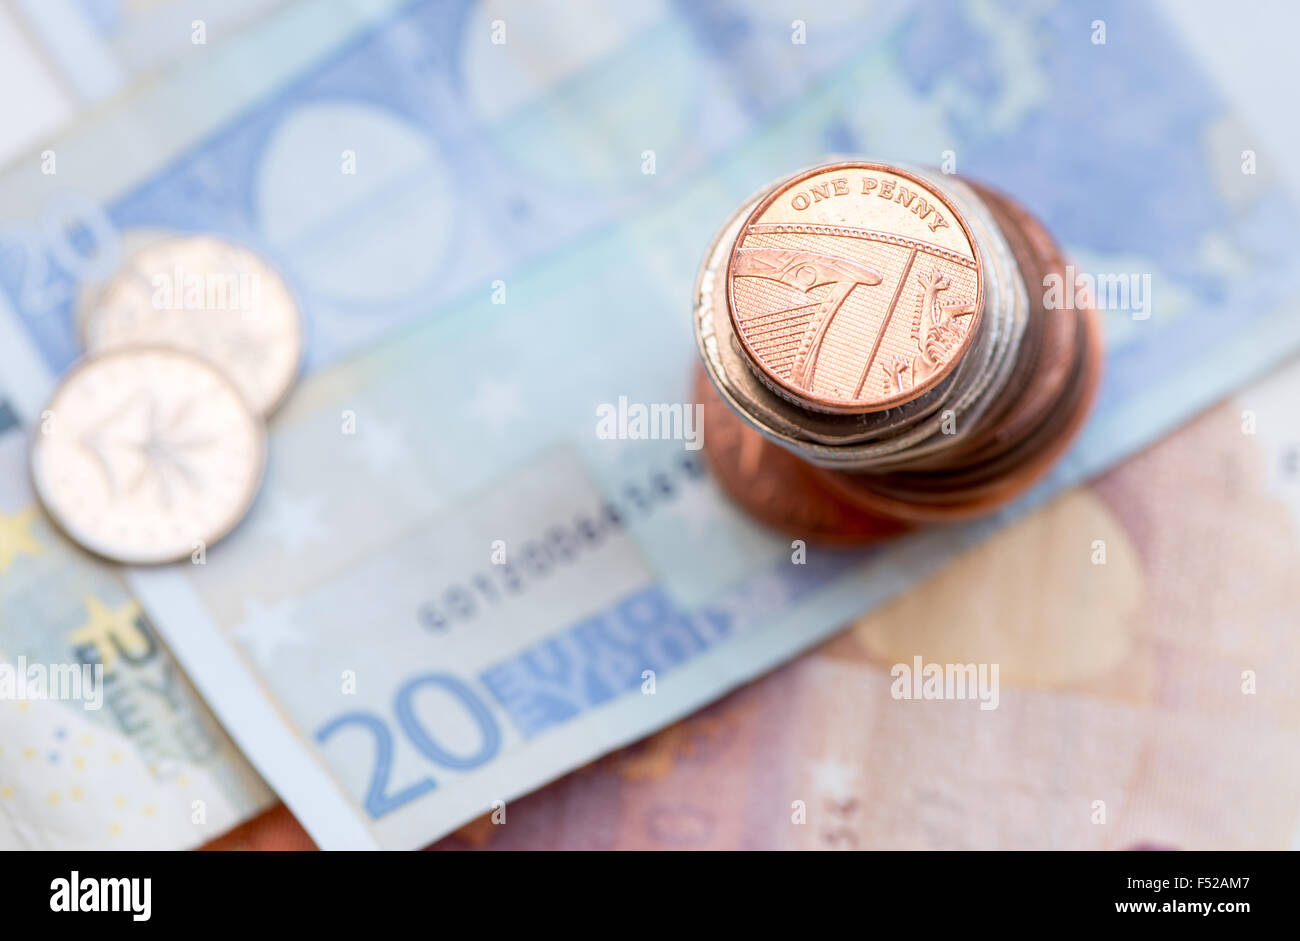 British one penny coin on a pile of coins and 20 Euro note Stock Photo